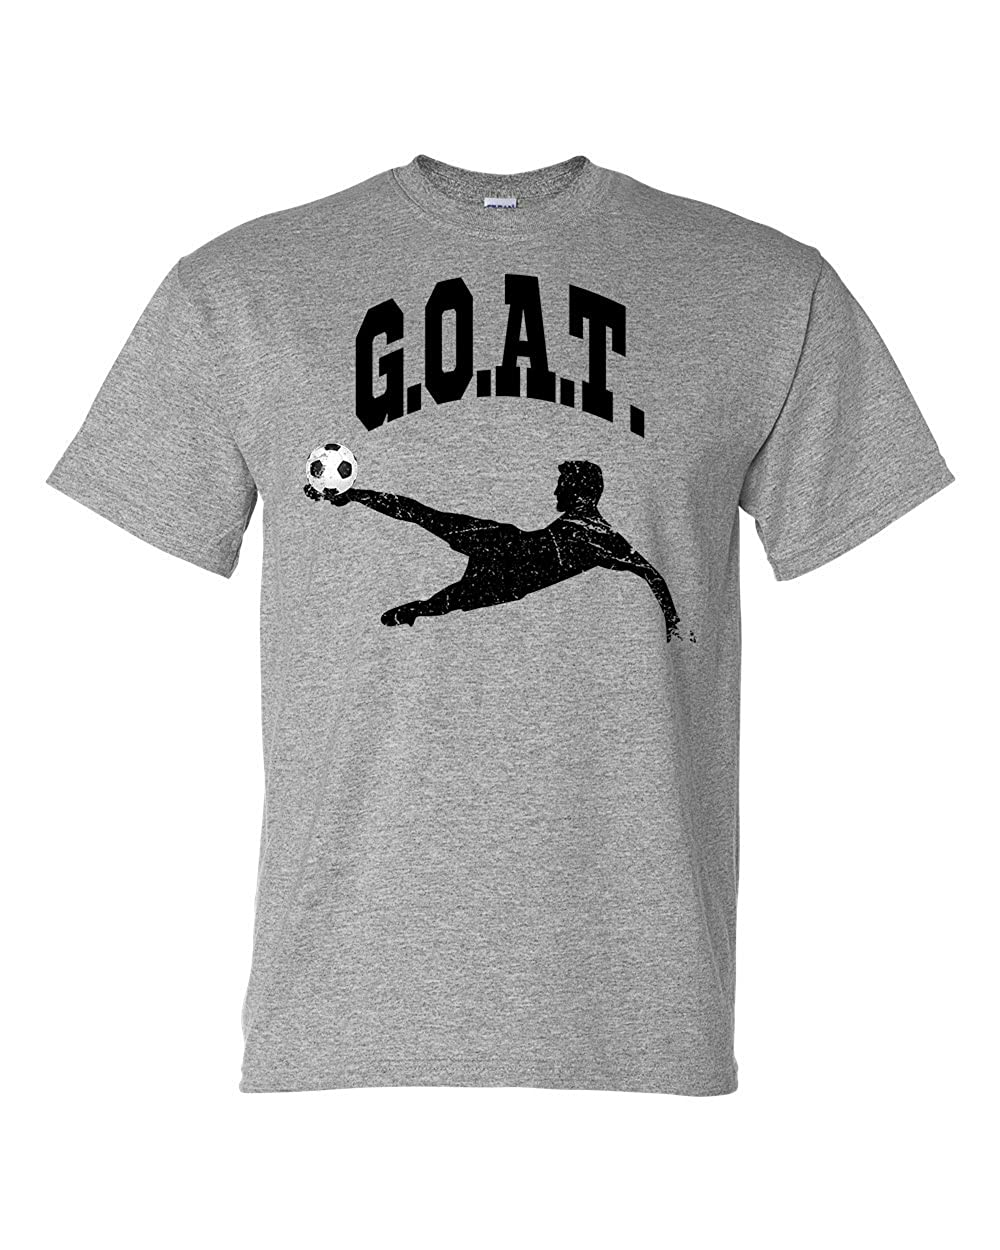 Custom Apparel R Us G.O.A.T Soccer Mens Short Sleeve